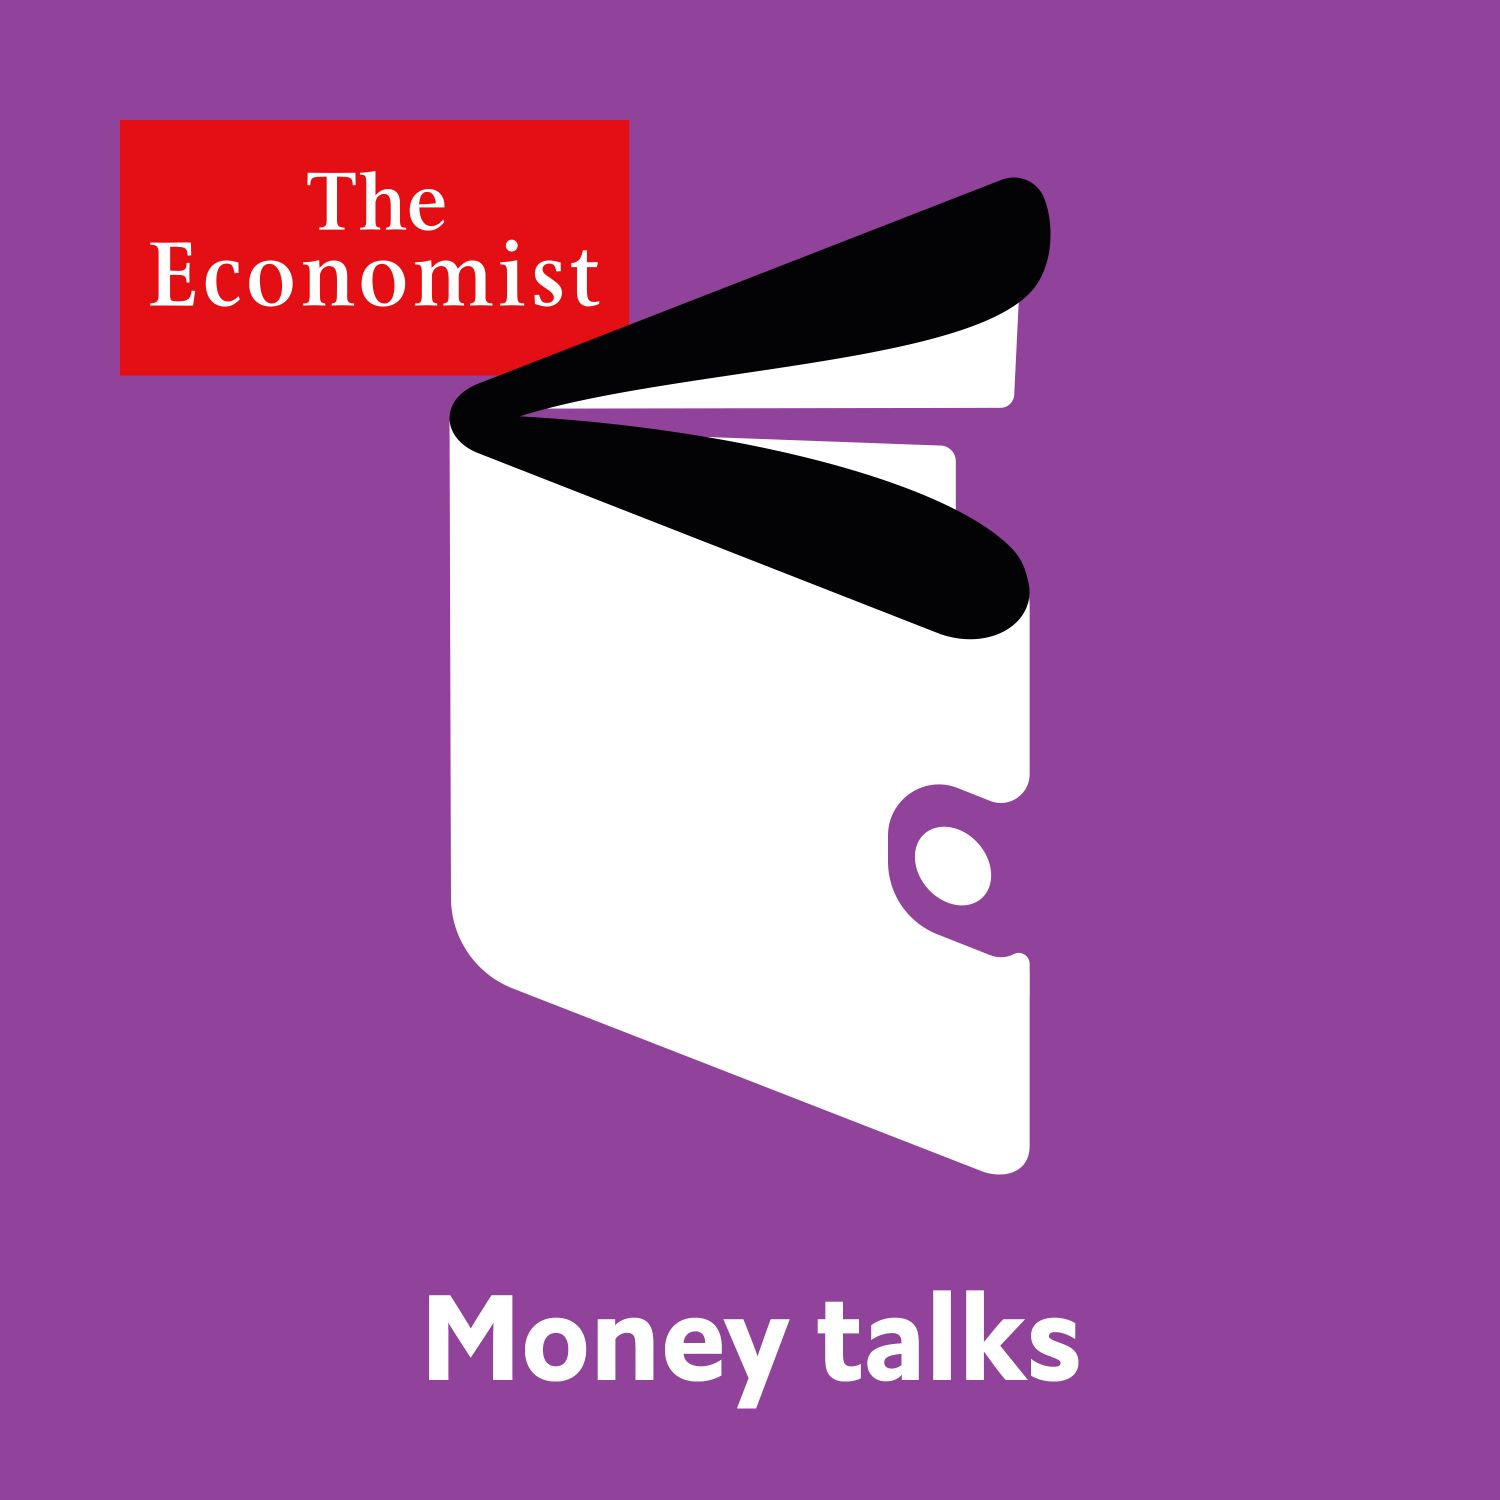 Money talks: Monopolies and boardroom games